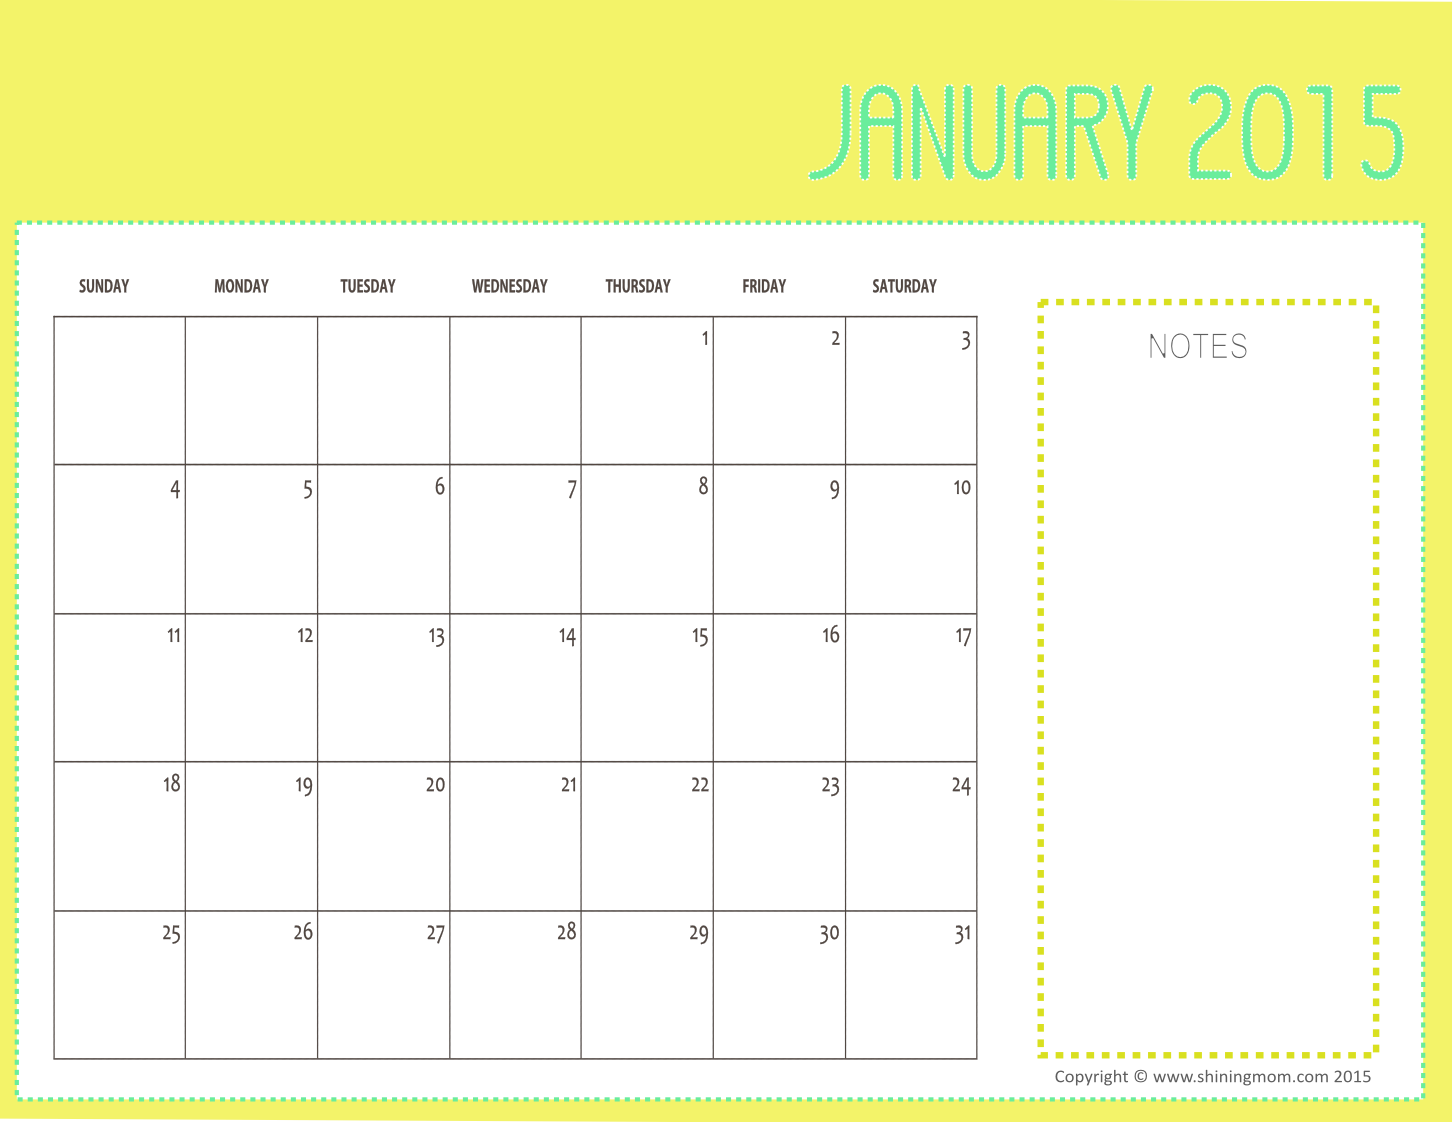 Printable Calendars By Month You Can Write In | elHouz